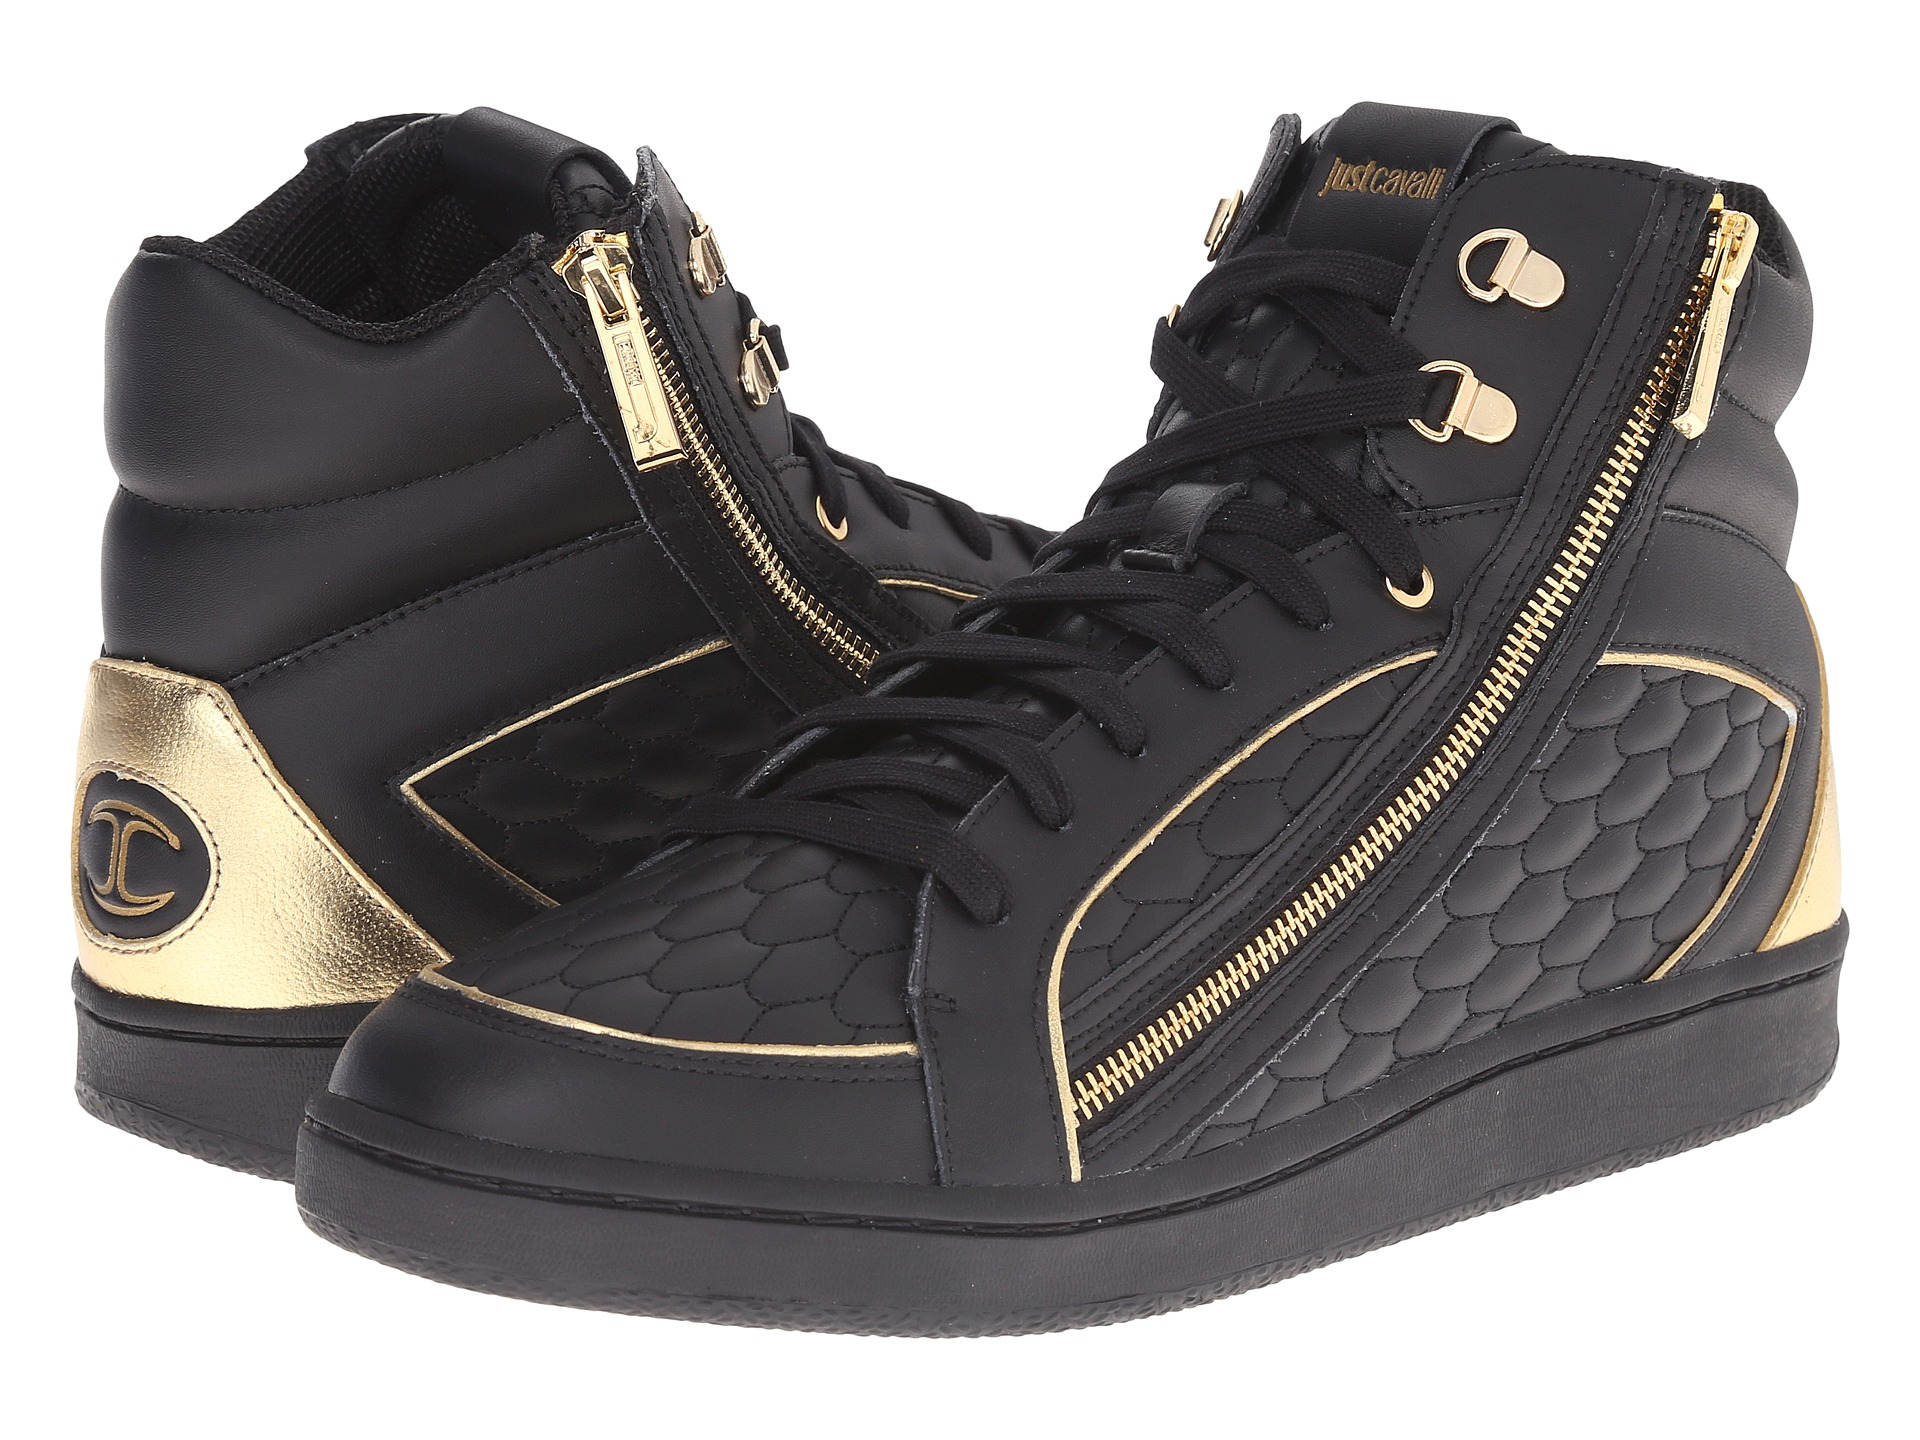 FOOTWEAR - High-tops & sneakers Just Cavalli Best Authentic Buy For Sale Outlet 100% Original rGSXjpU